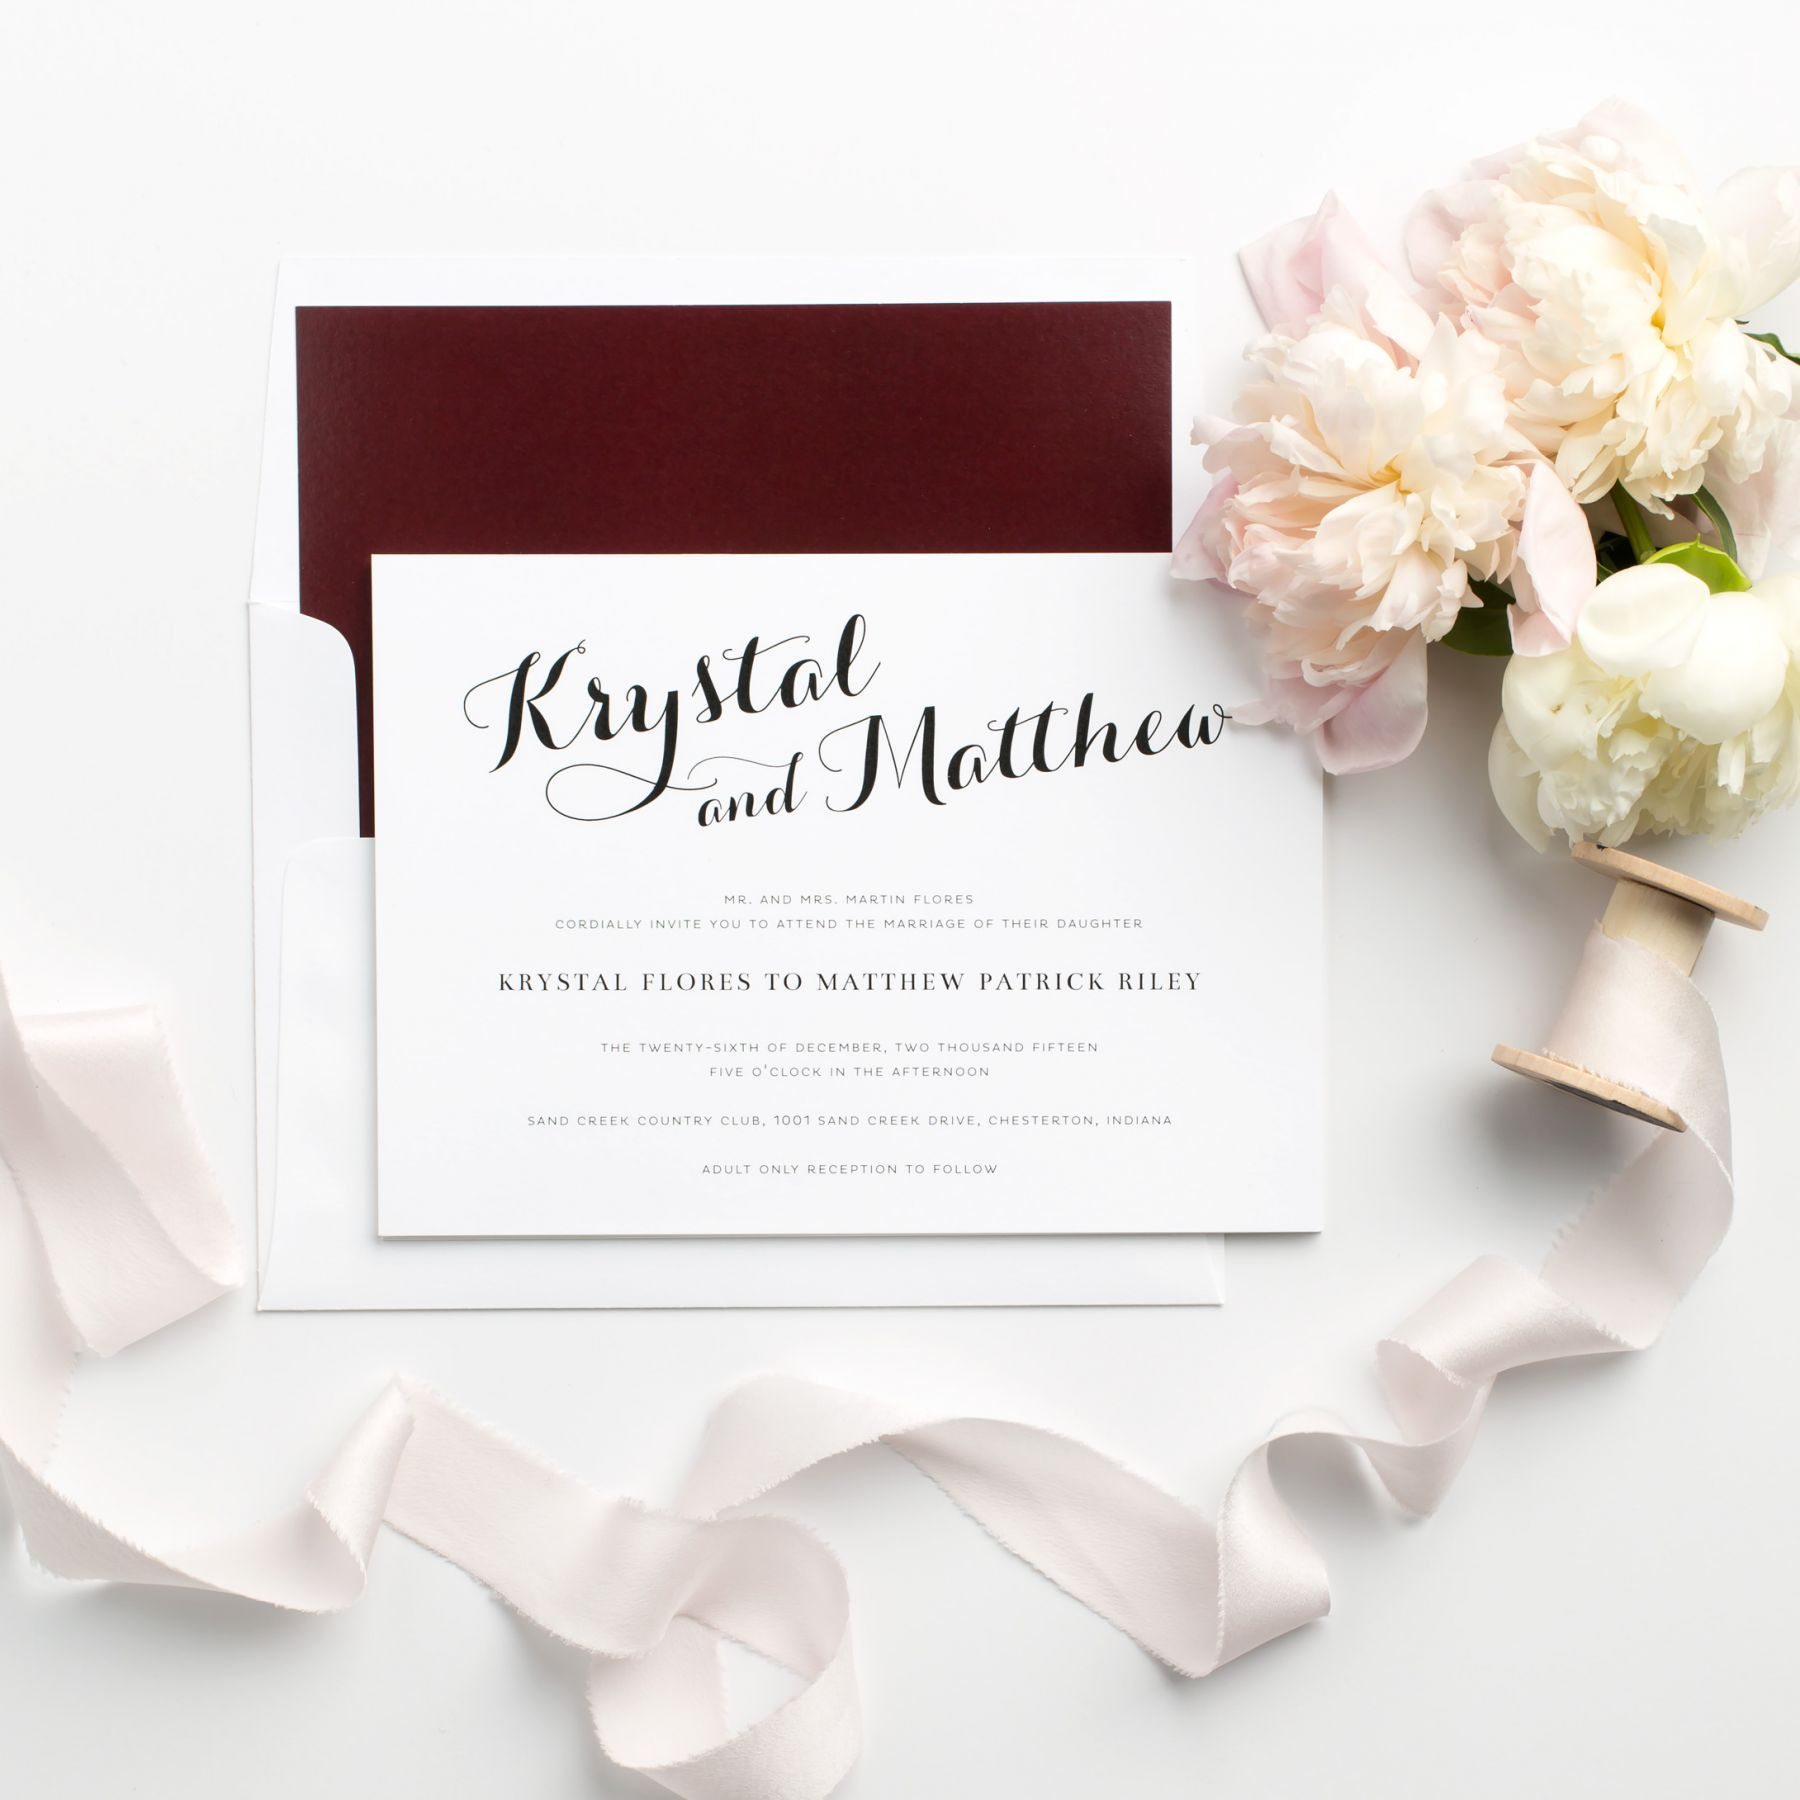 Burgundy Wedding Invitations with Romantic and Bold Calligraphy